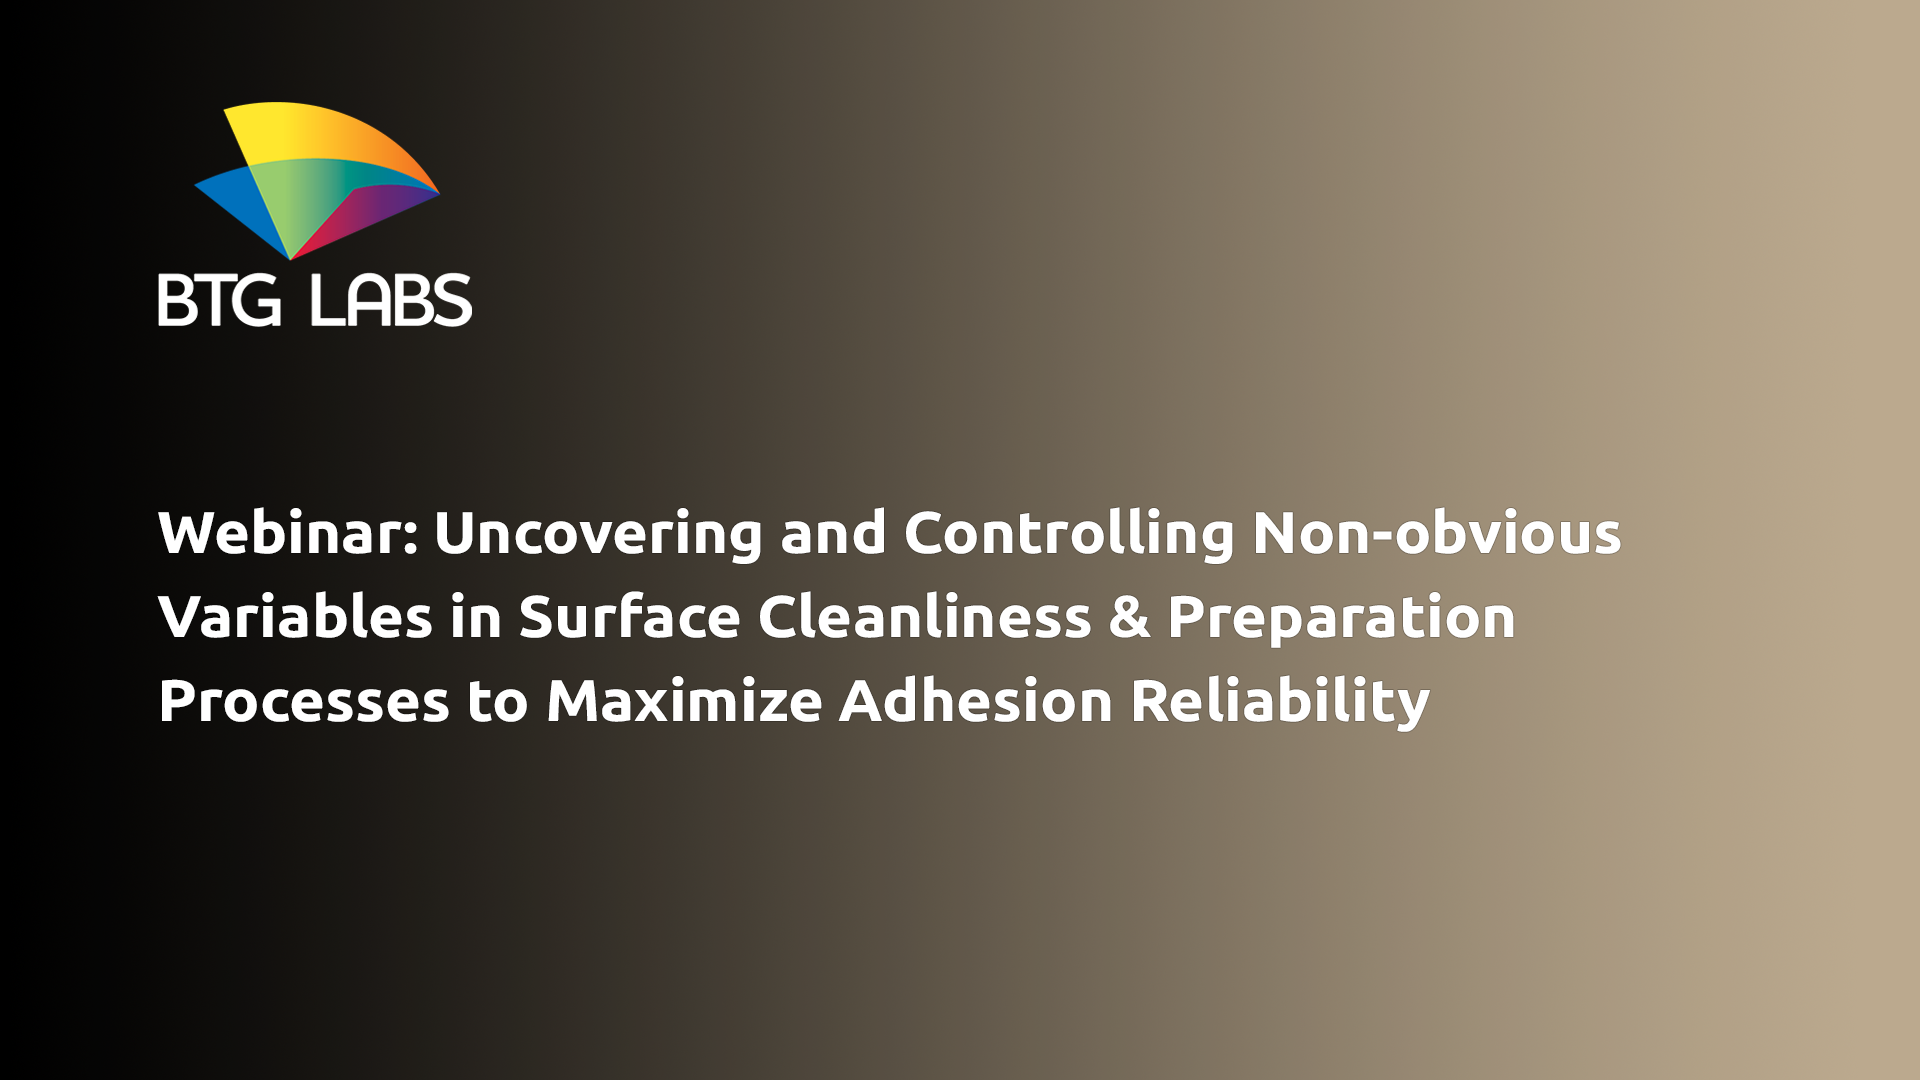 uncovering-and-controlling-non-obvious-variables-in-surface-cleanliness-and-preparation-processes-to-maximize-adhesion-reliability